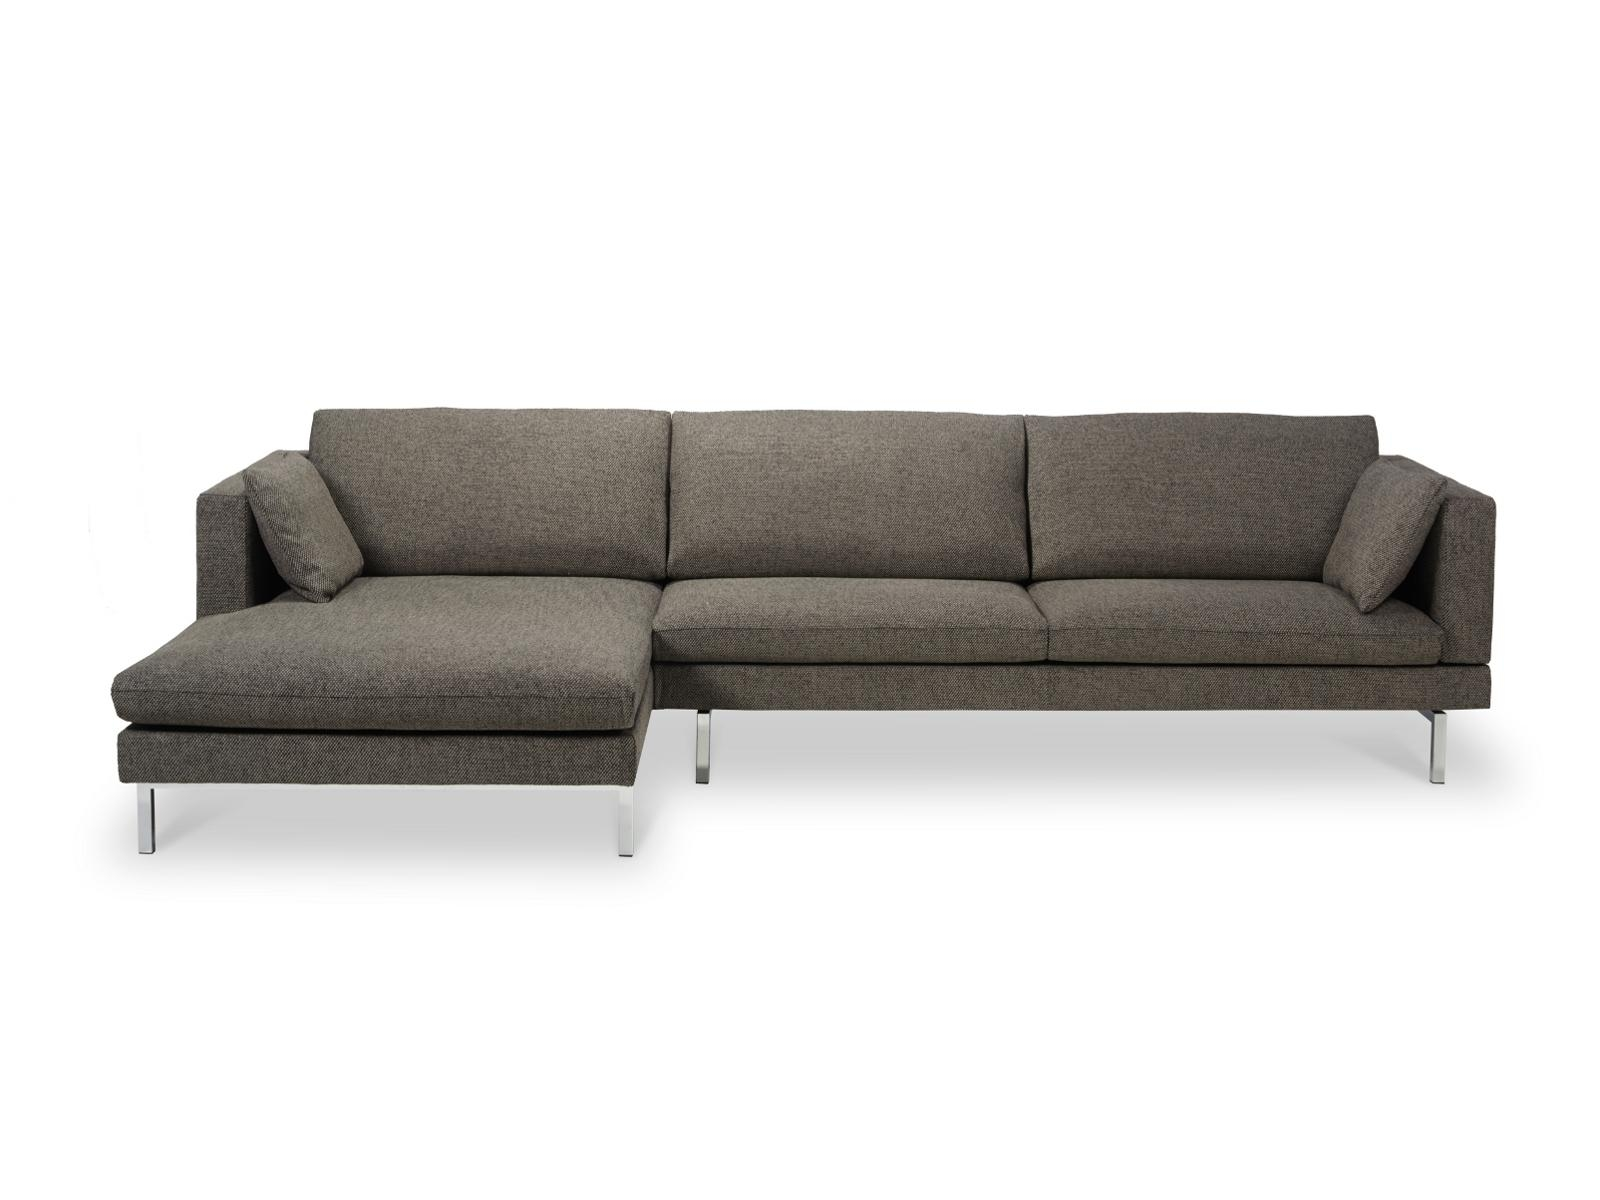 Shiva   Leather Sofa Shiva Collectionjori Design Jean Pierre In Sofas With Chaise Longue (Image 14 of 20)